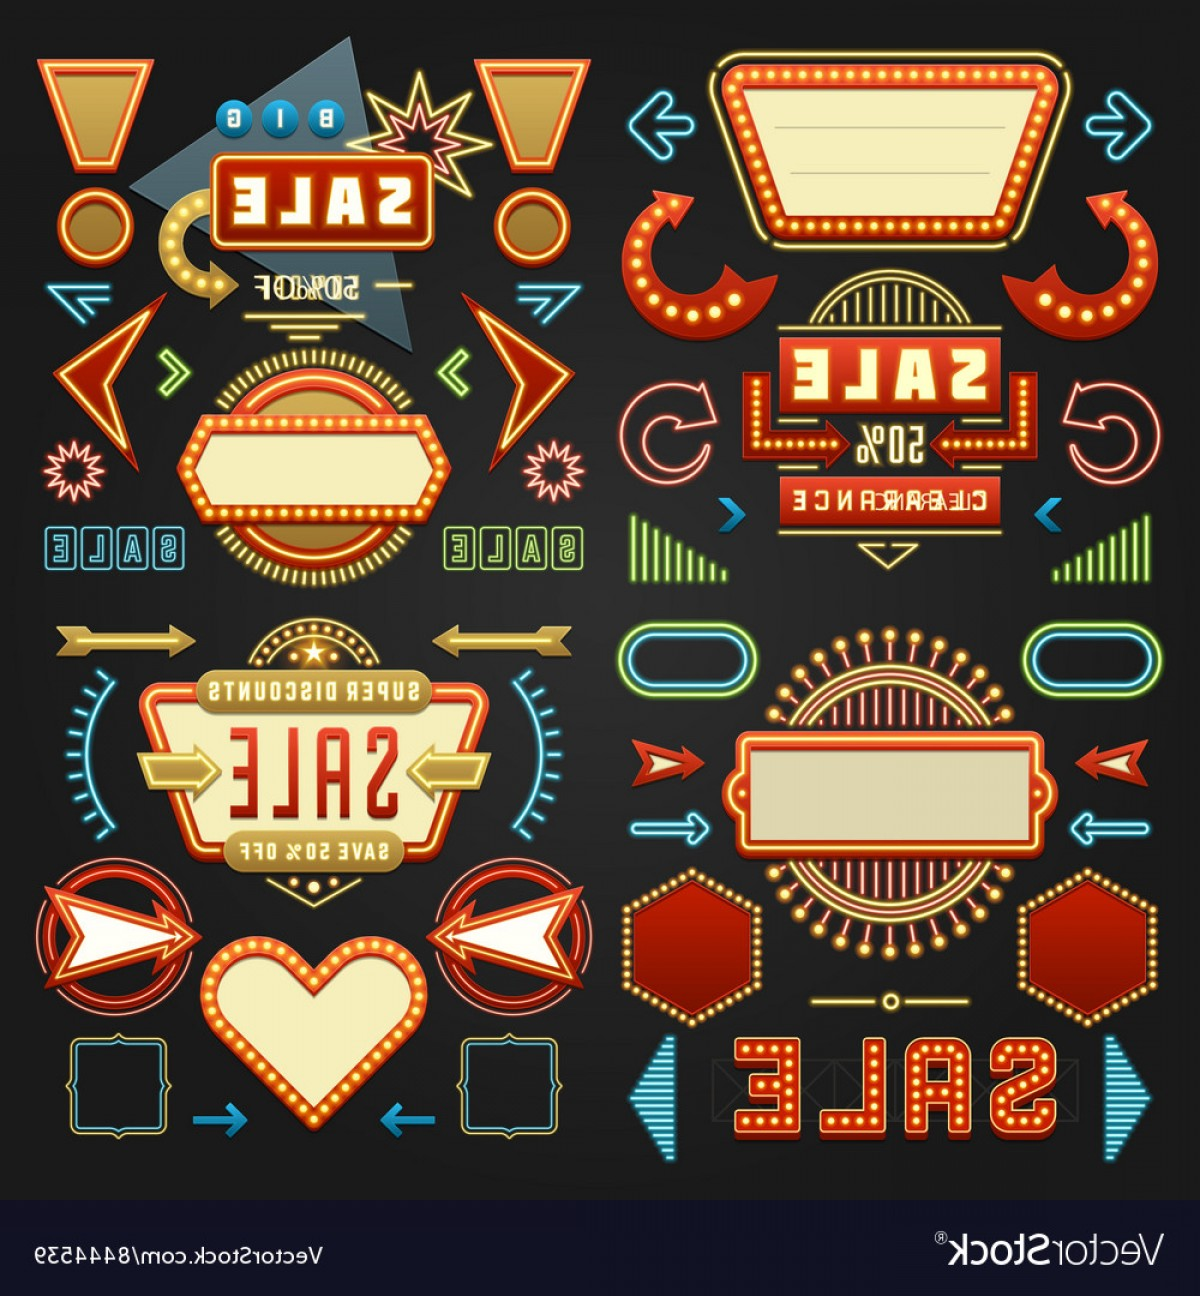 1950 Vector Frame: Retro American S Sign Design Elements Set Vector